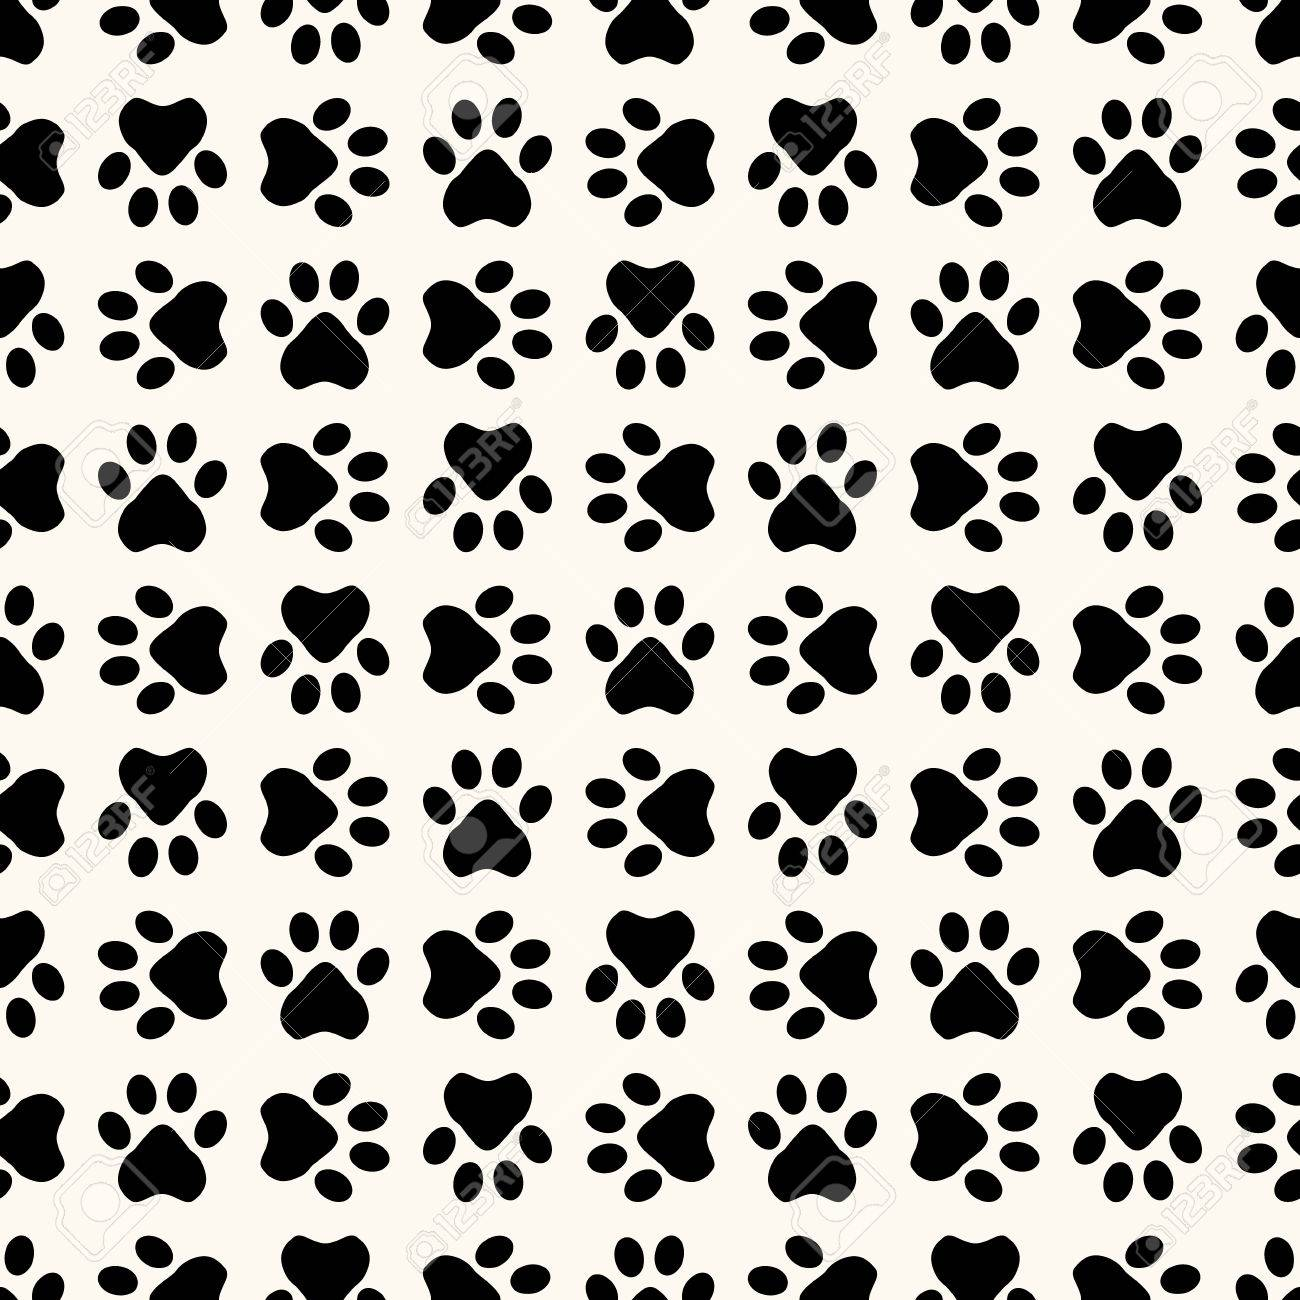 Seamless Animal Pattern Of Paw Footprint Can Be Used For Wallpaper Fills